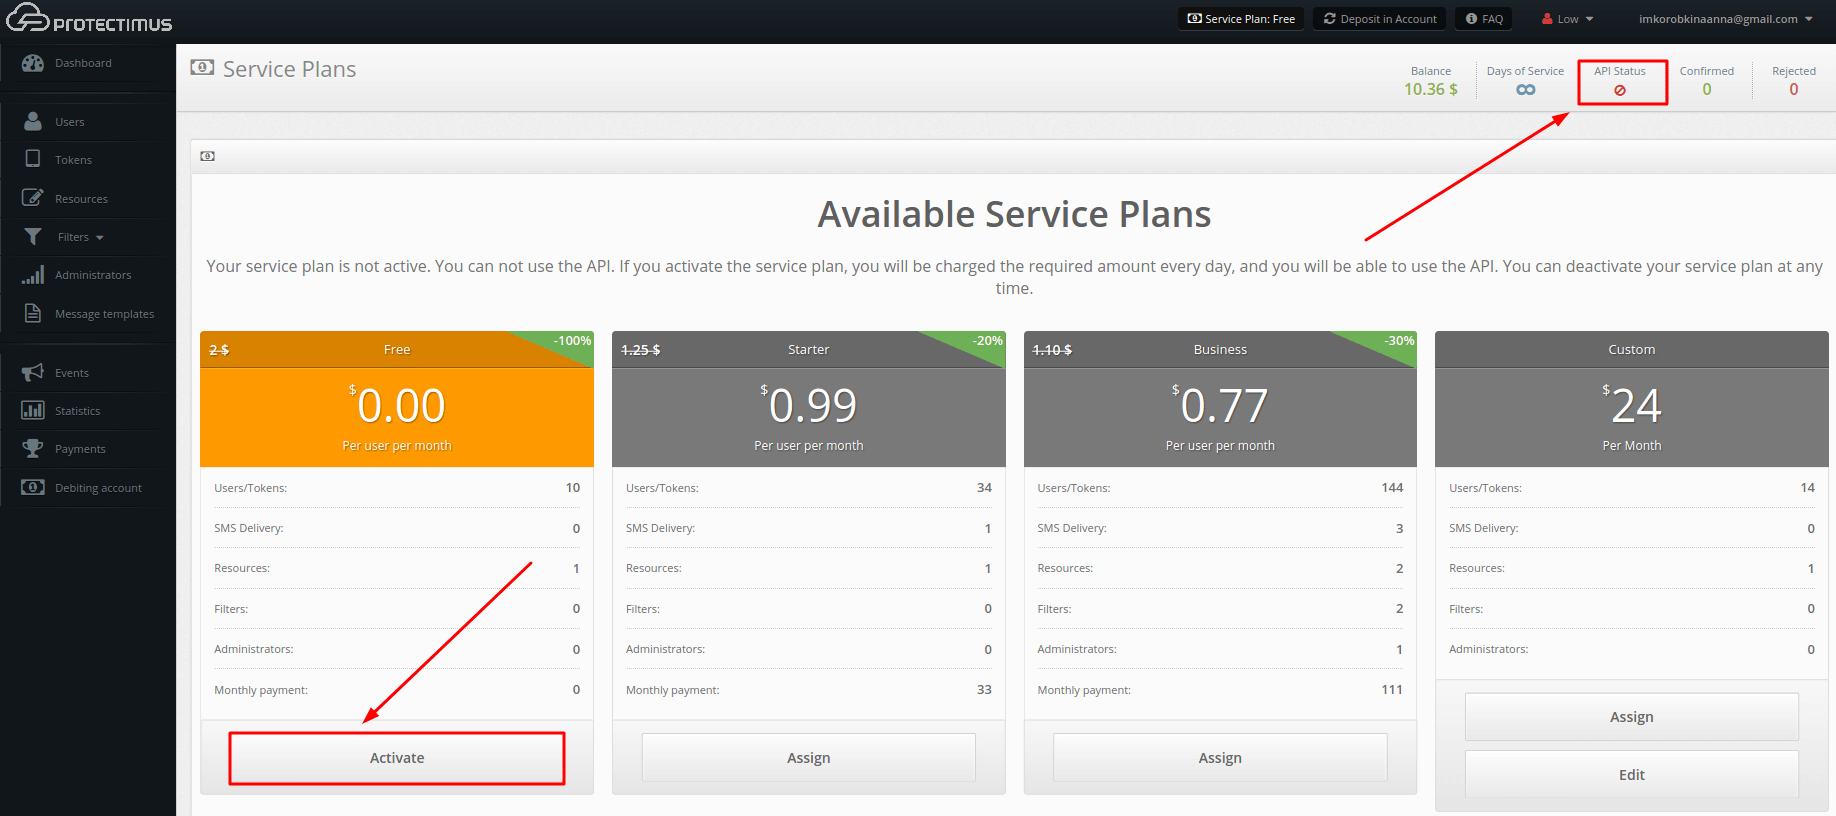 Activate a service plan in Protectimus SaaS service